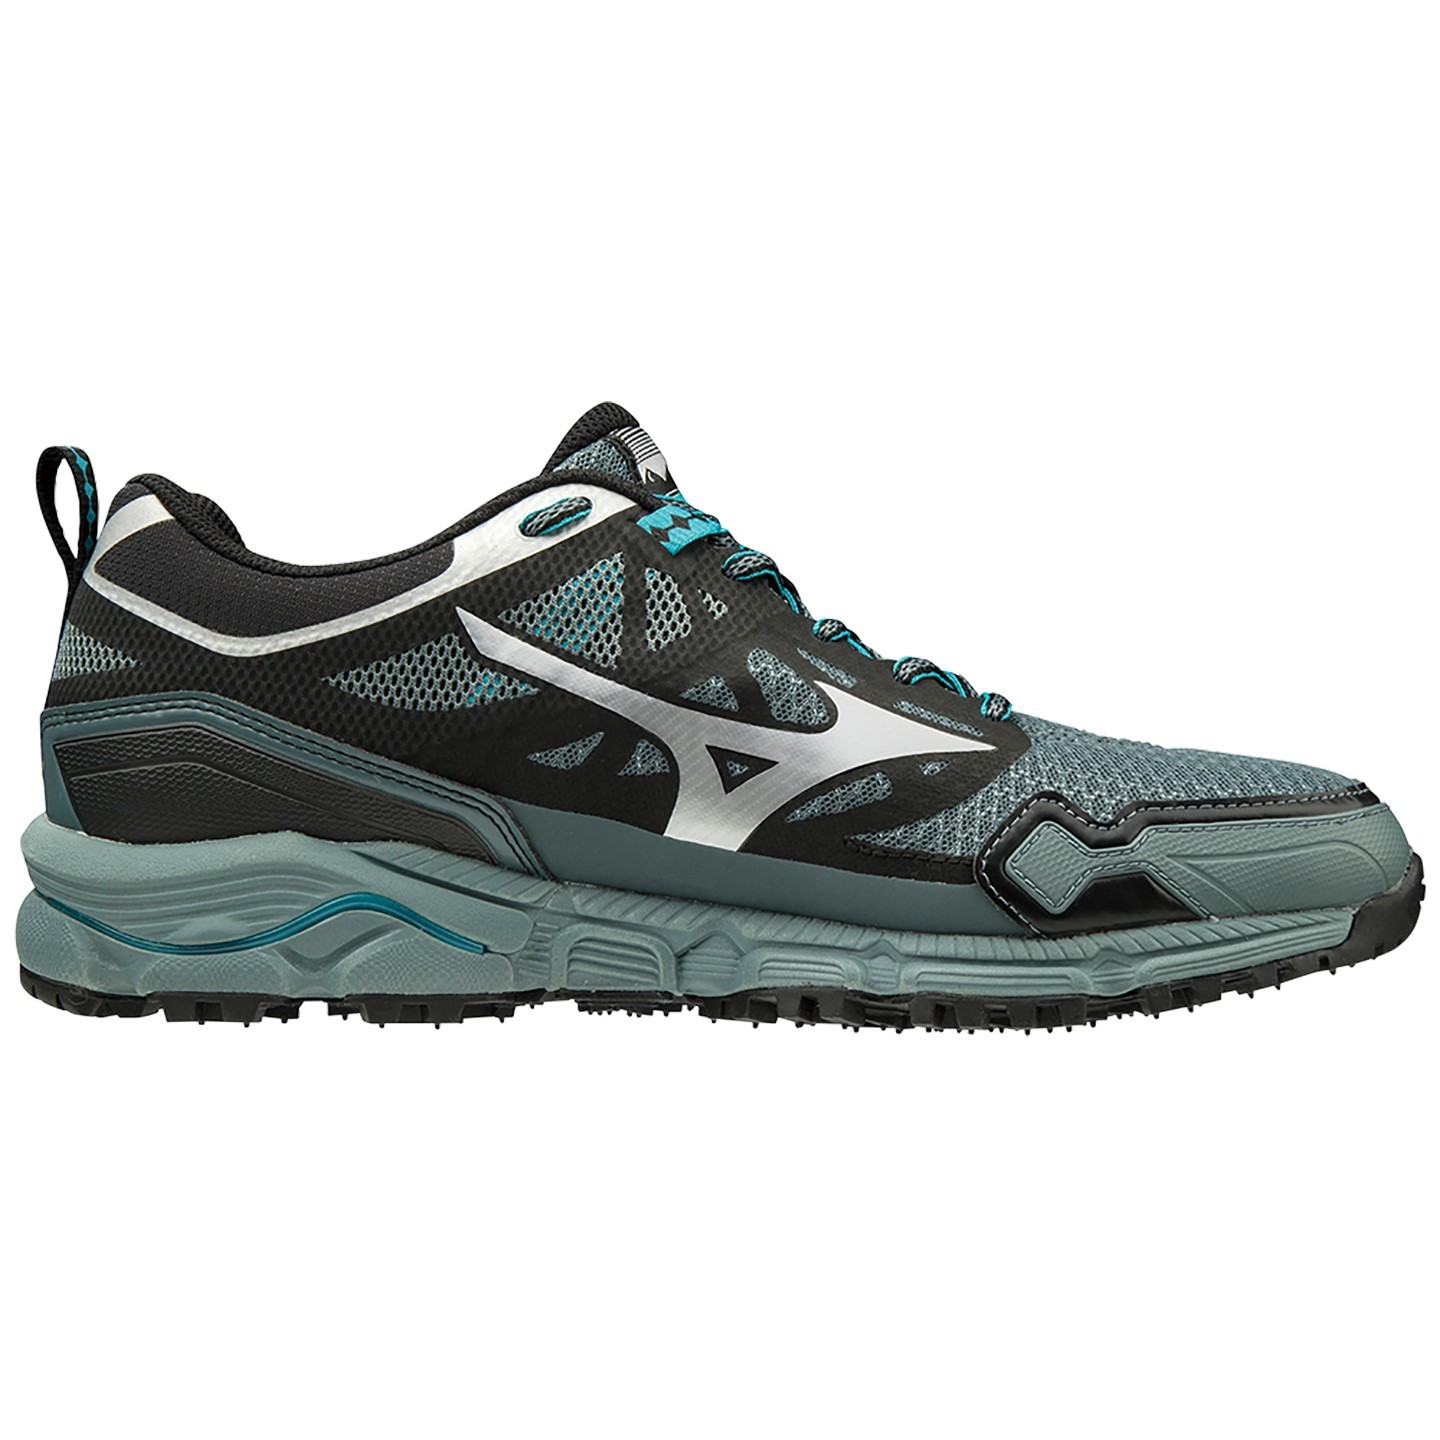 584559deb11e Mizuno Wave Daichi 4 - Mens Trail Running Shoes - Stormy Weather/Peacock  Blue